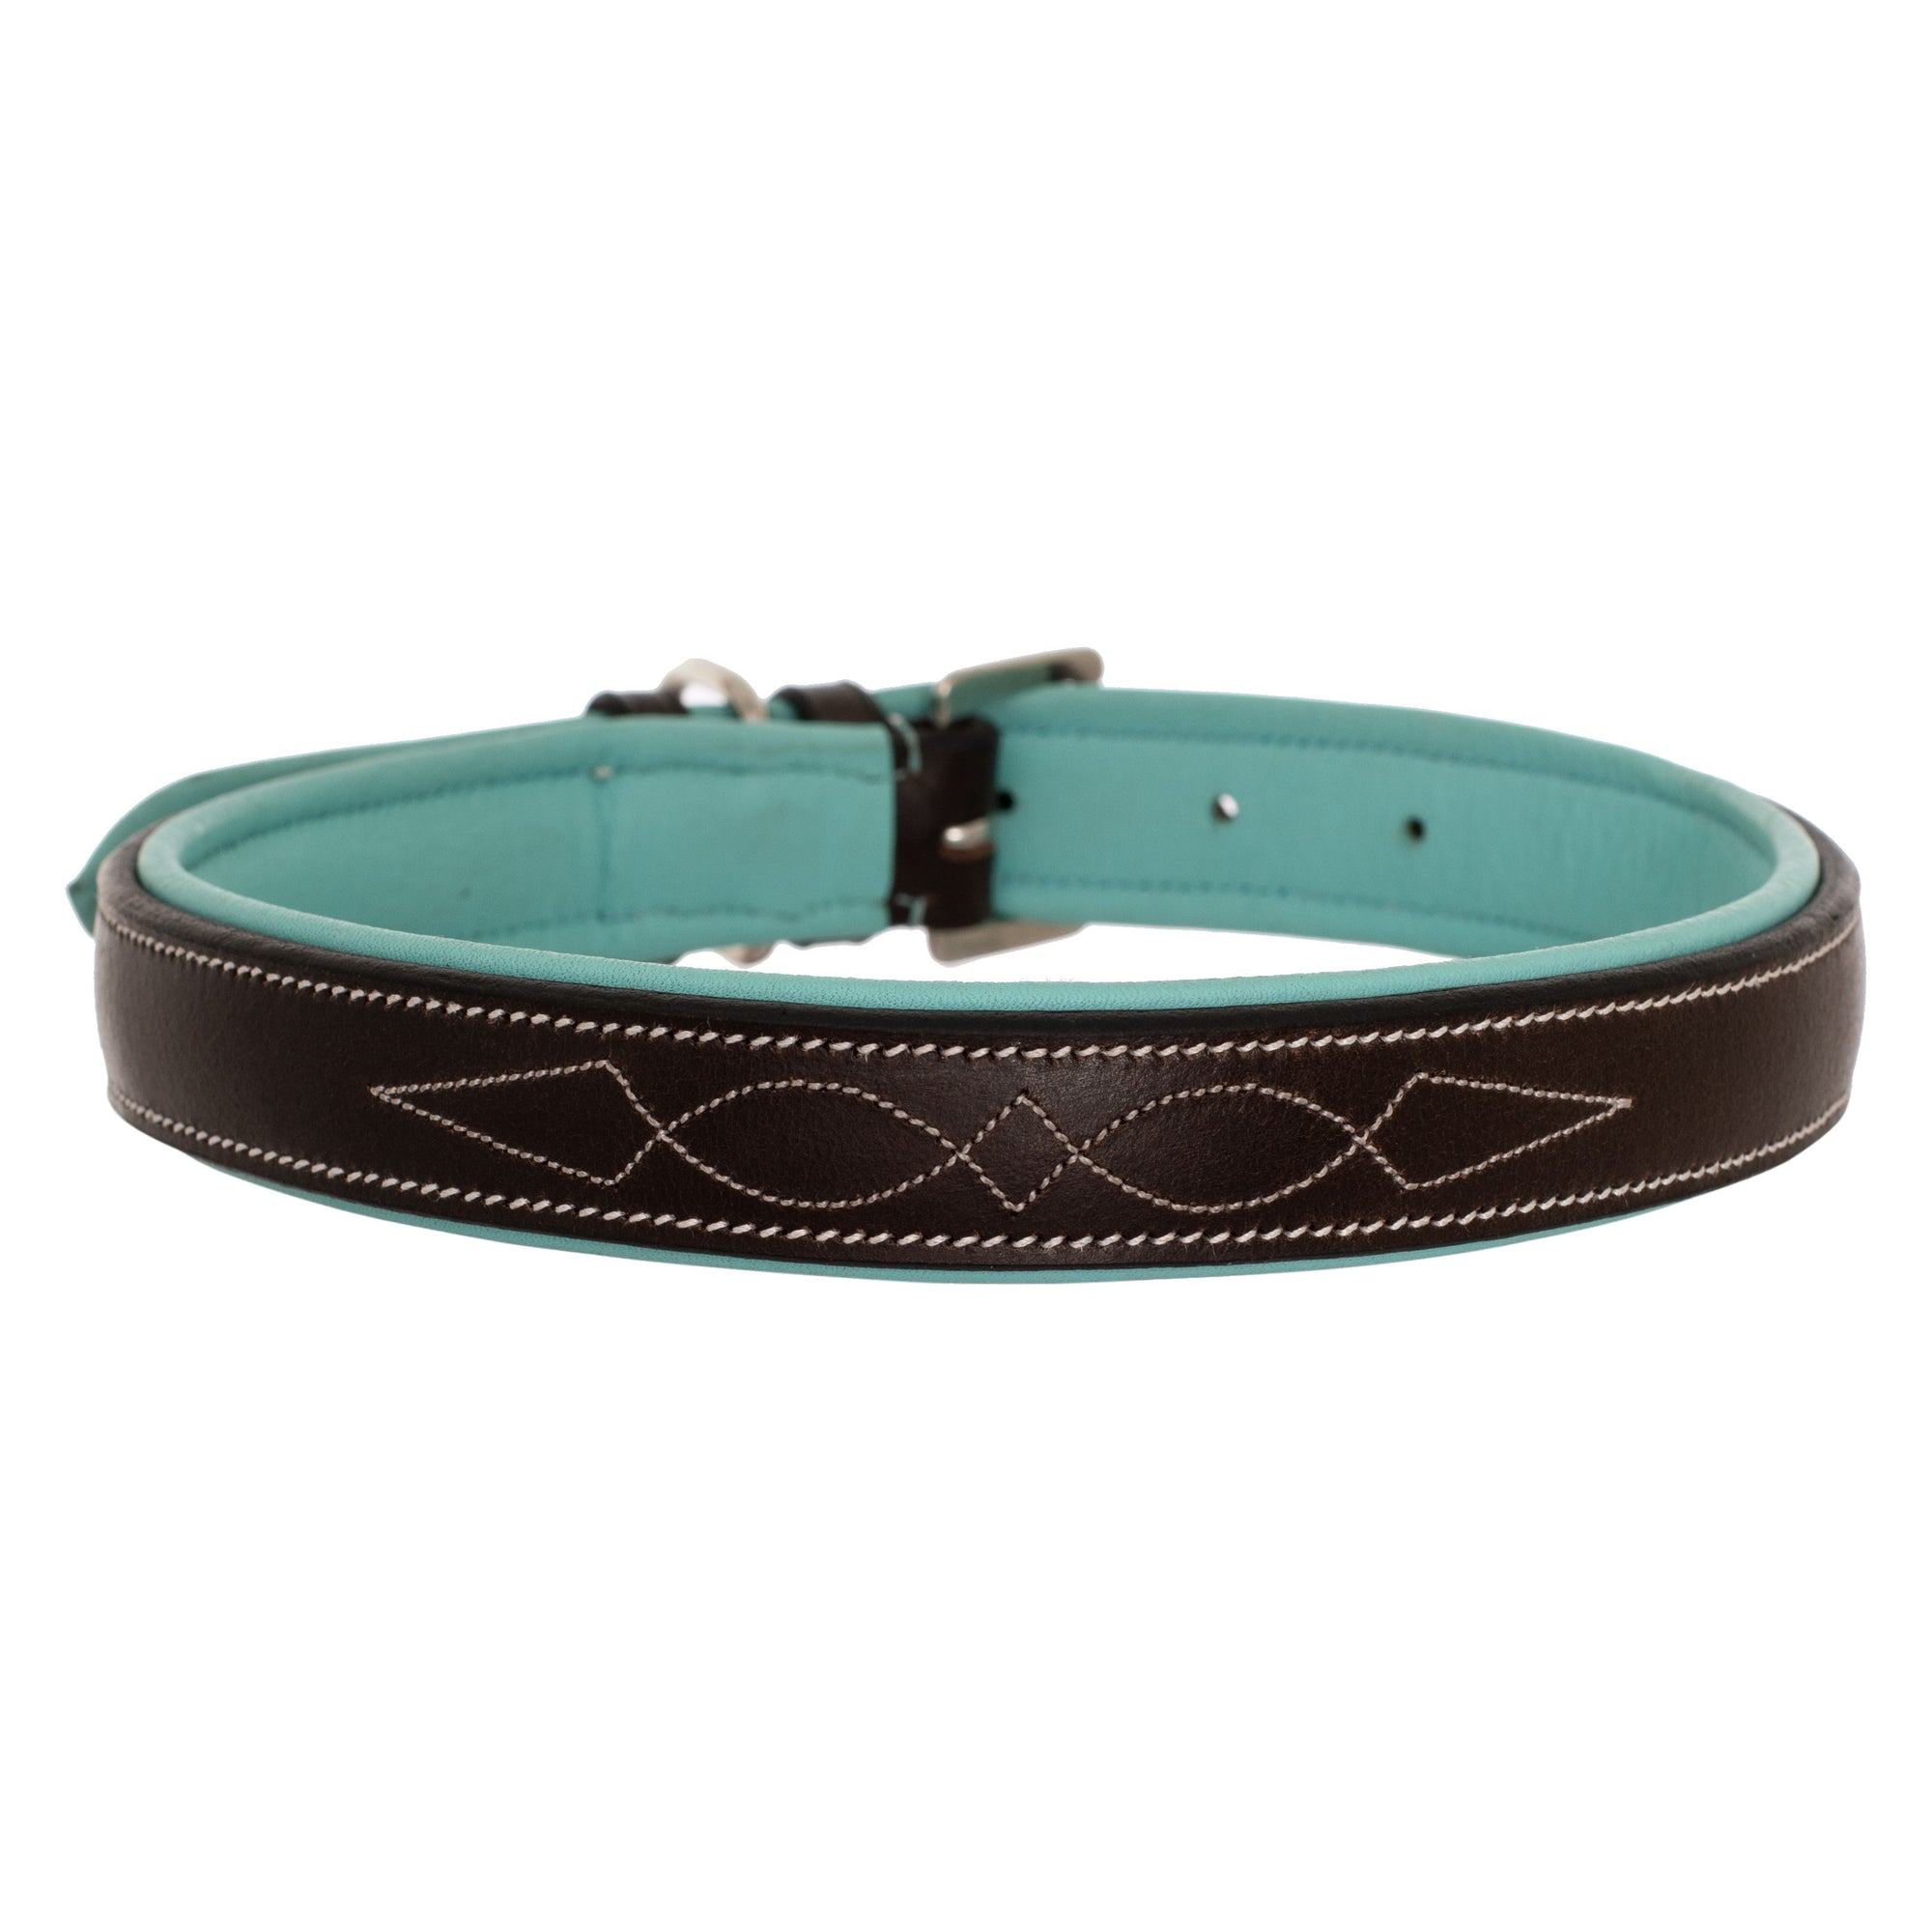 ExionPro Fancy Stitched Padded Leather Dog Collar - Sky Blue Padding-Bridles & Reins